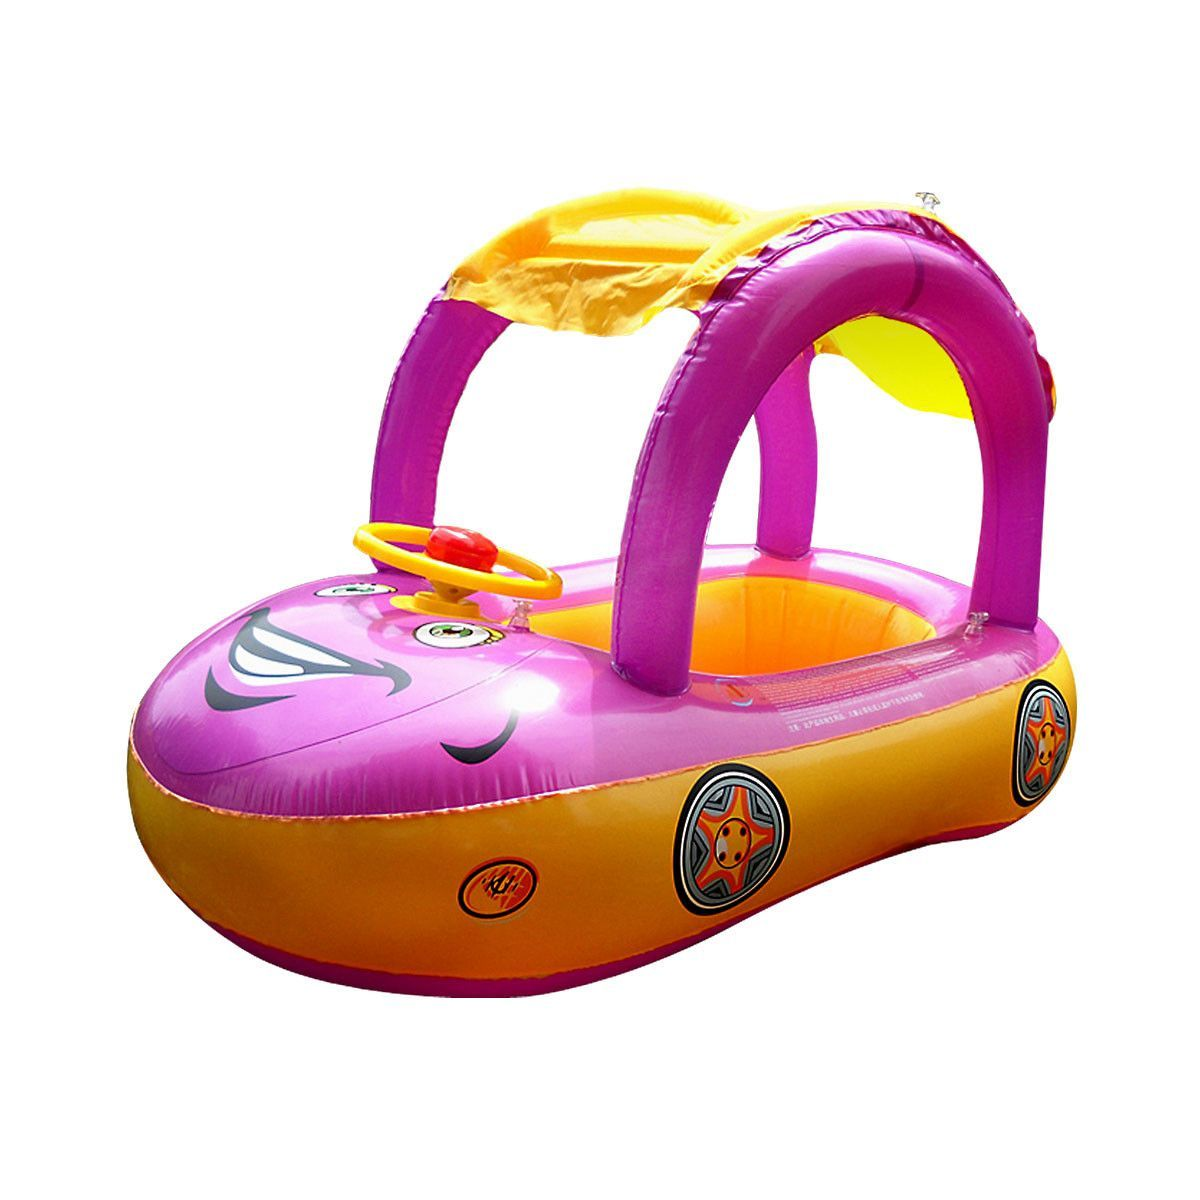 Product details of new inflatable floating swim ring kids children toy - Inflatable Baby Float Seat Boat Tube Ring Car Sun Shade Water Swim Swimming Pool Portable Purple